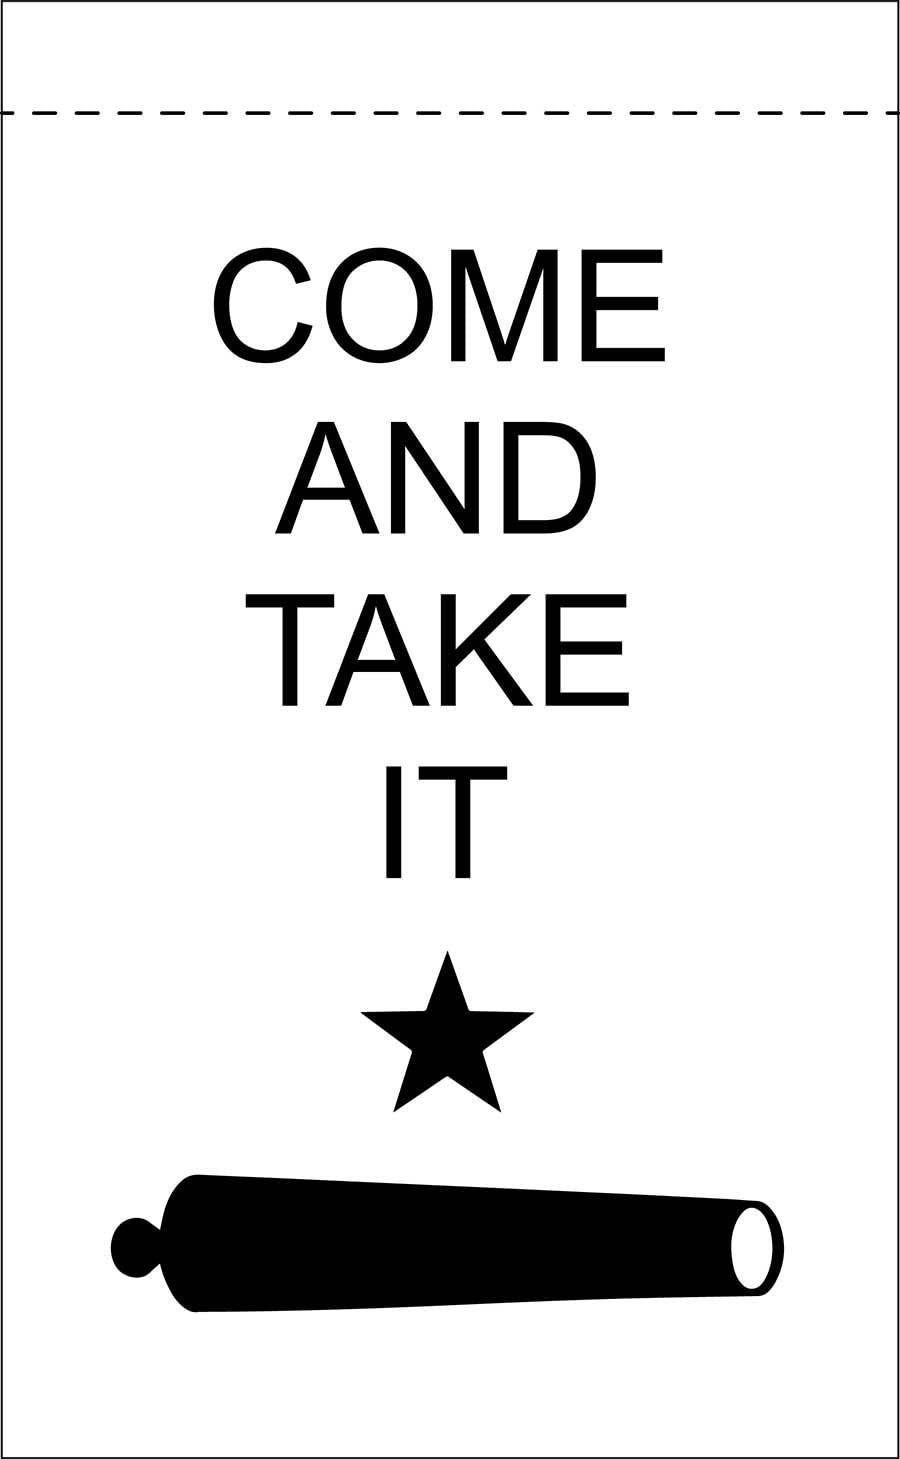 Come and Take It 18inx12in Nylon Garden Flag 18x12 Made in USA 18